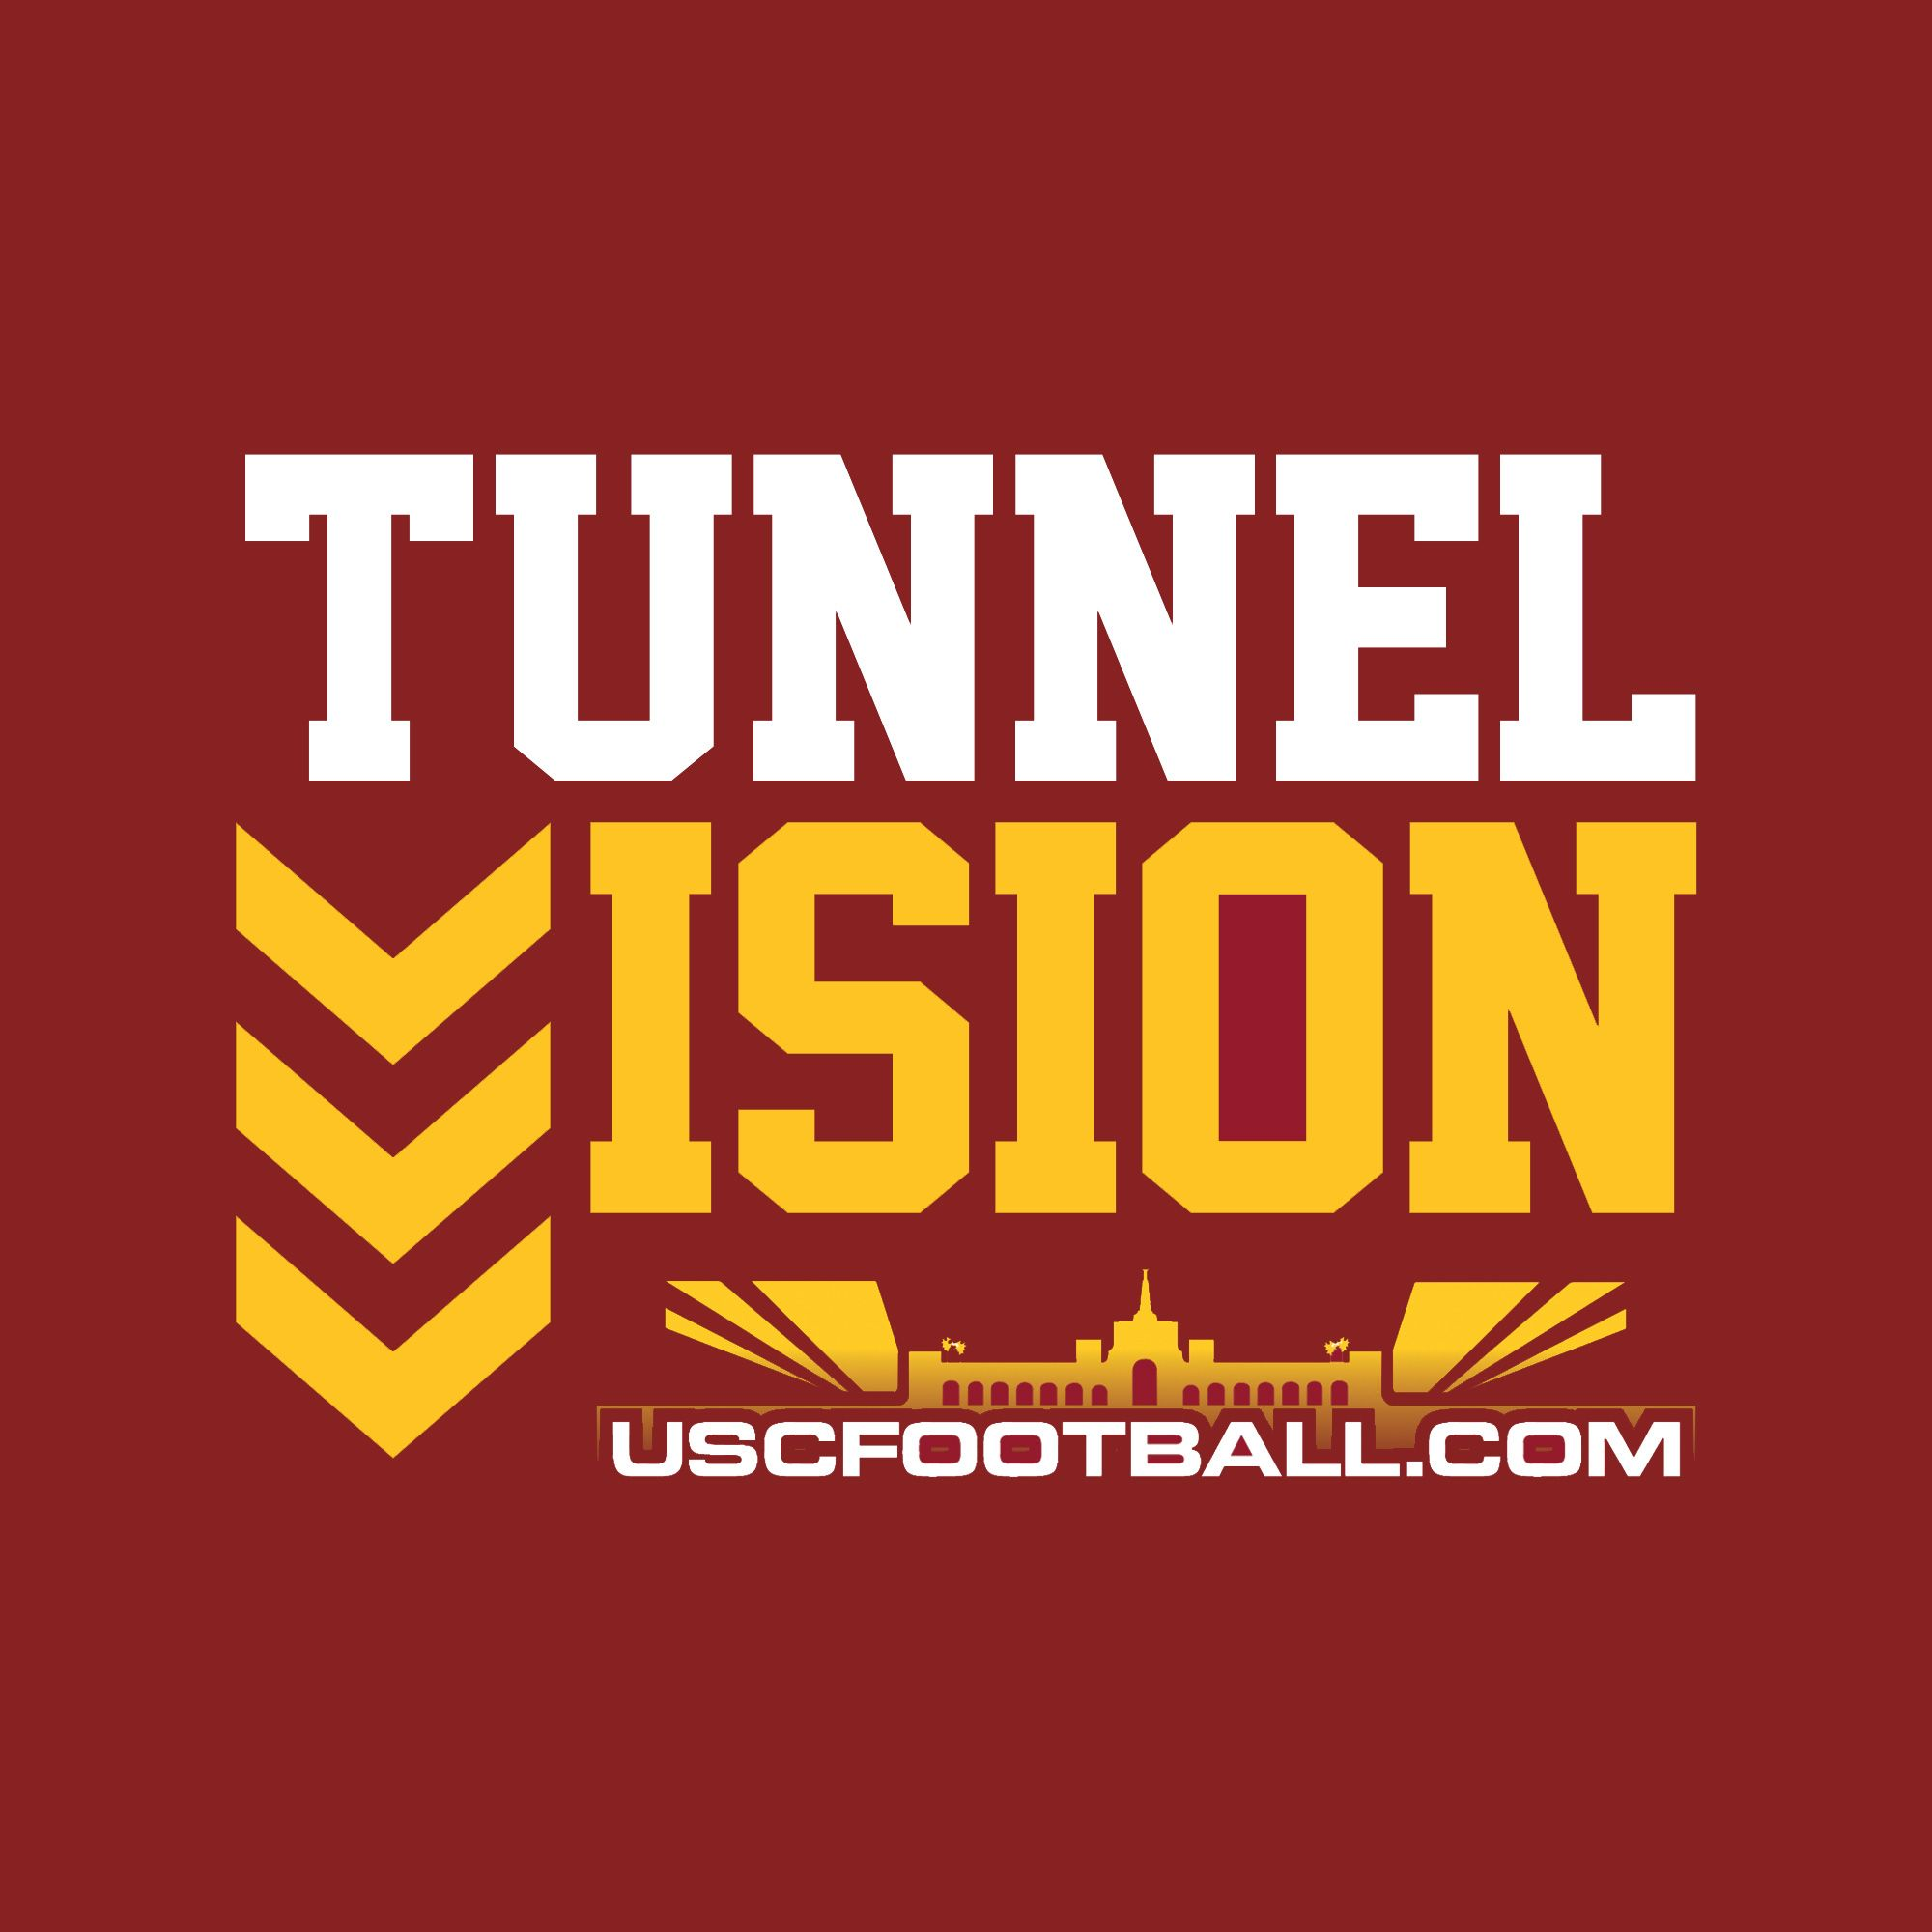 Tunnel Vision Remote - More wins for the USC recruiting team